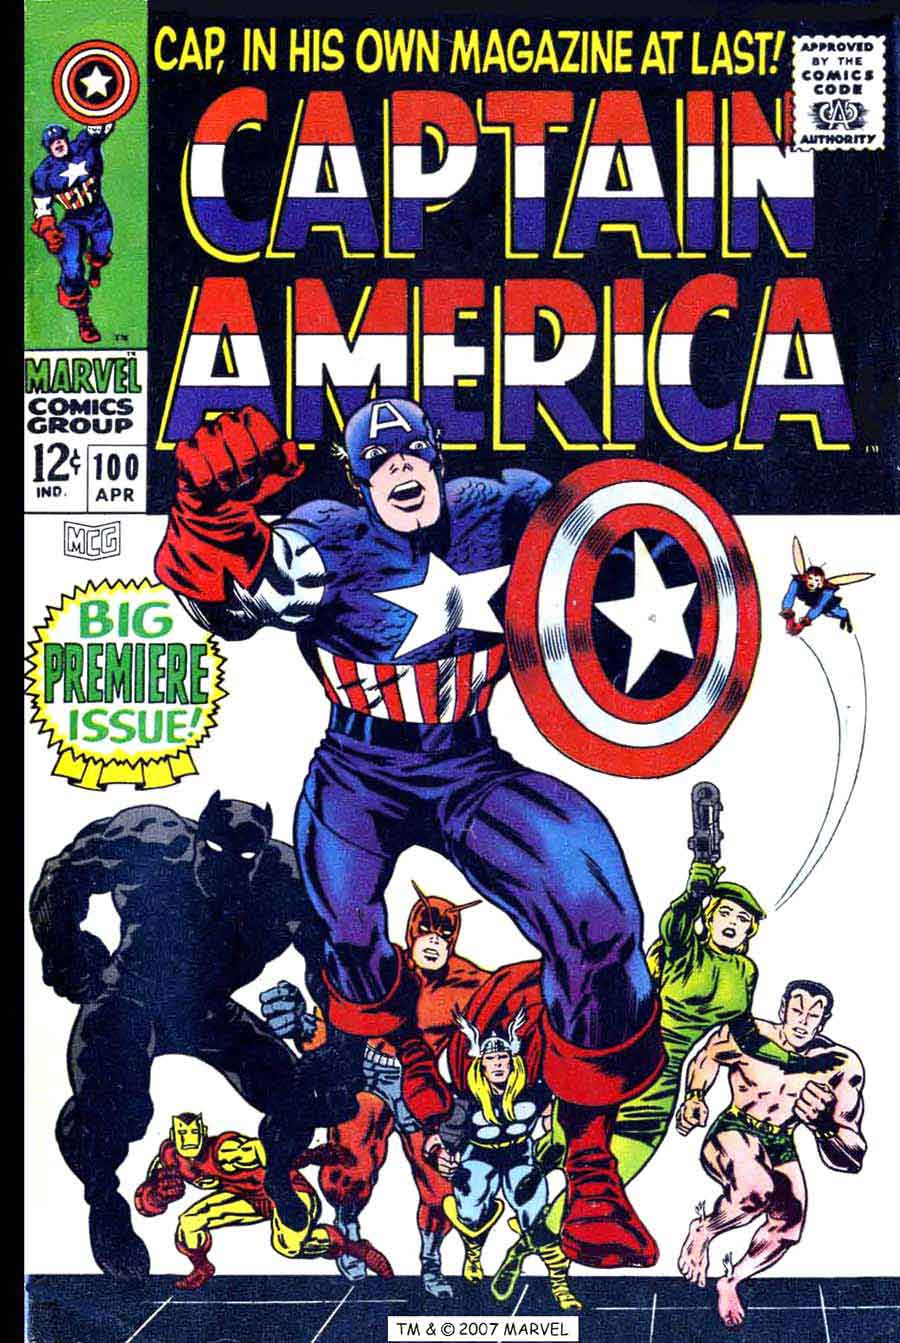 Captain America v1 #100 marvel comic book cover art by Jack Kirby